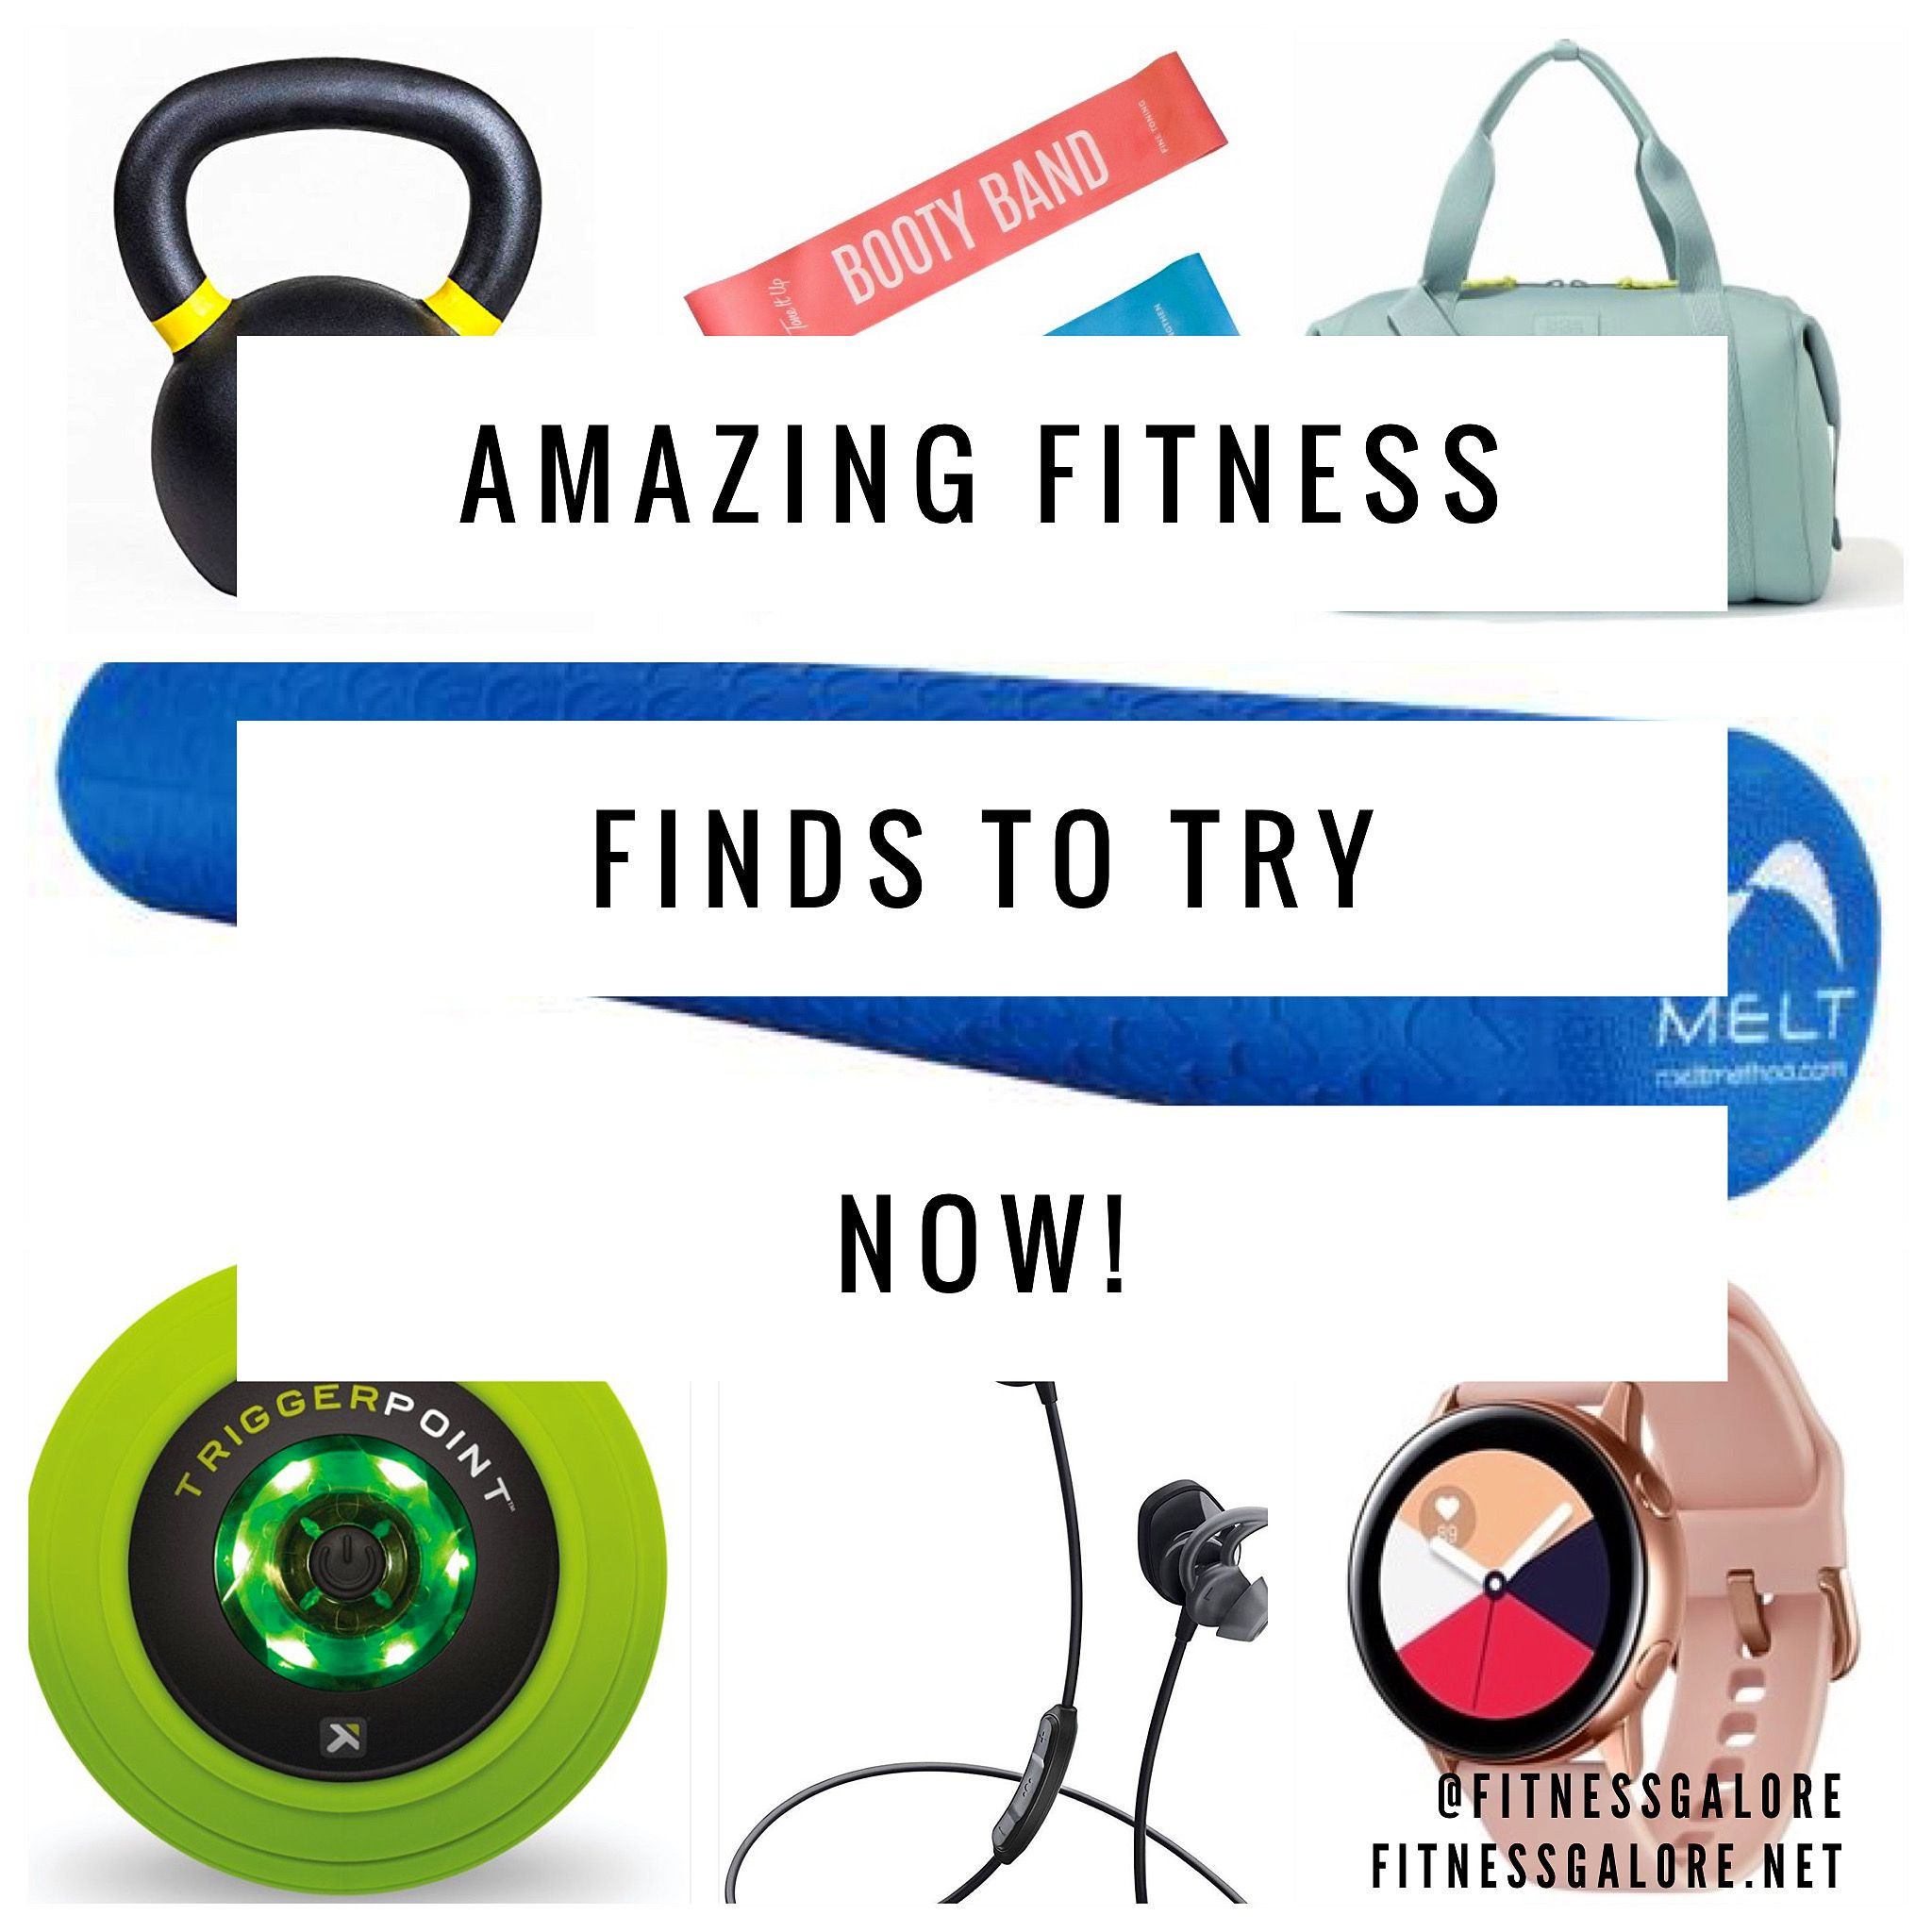 #fitness #fitnessfinds #fitnessmusthaves